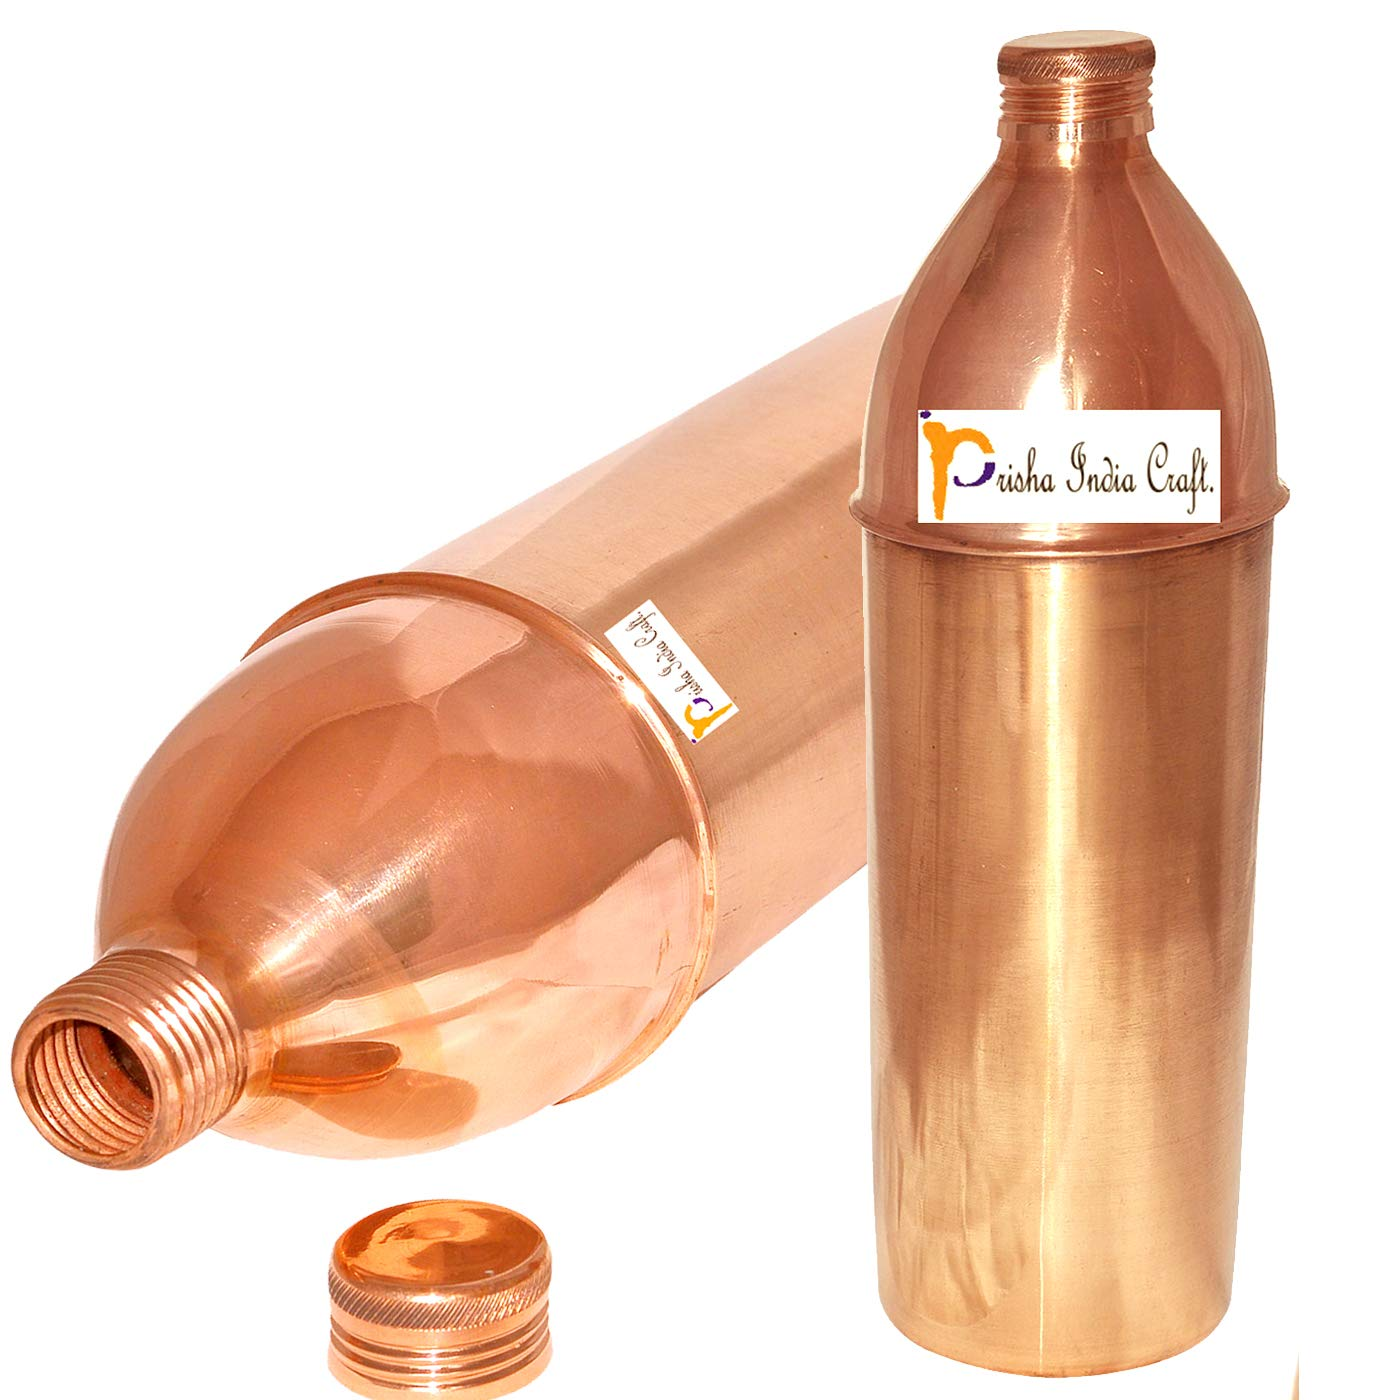 850ml / 28.74oz - Set of 2 - Prisha India Craft ® Pure Copper Water Bottle for the Refrigerator Health Benefits - Water Bottles - Handmade Christmas Gift with FREE WOODEN KEYRING IDEA